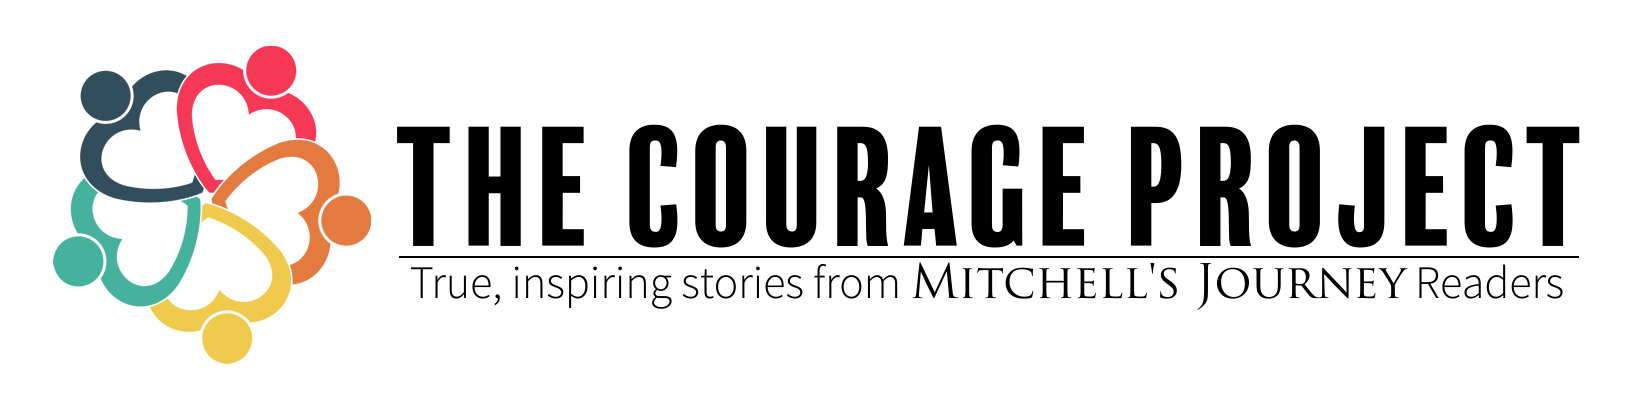 Courage Project Logo.png